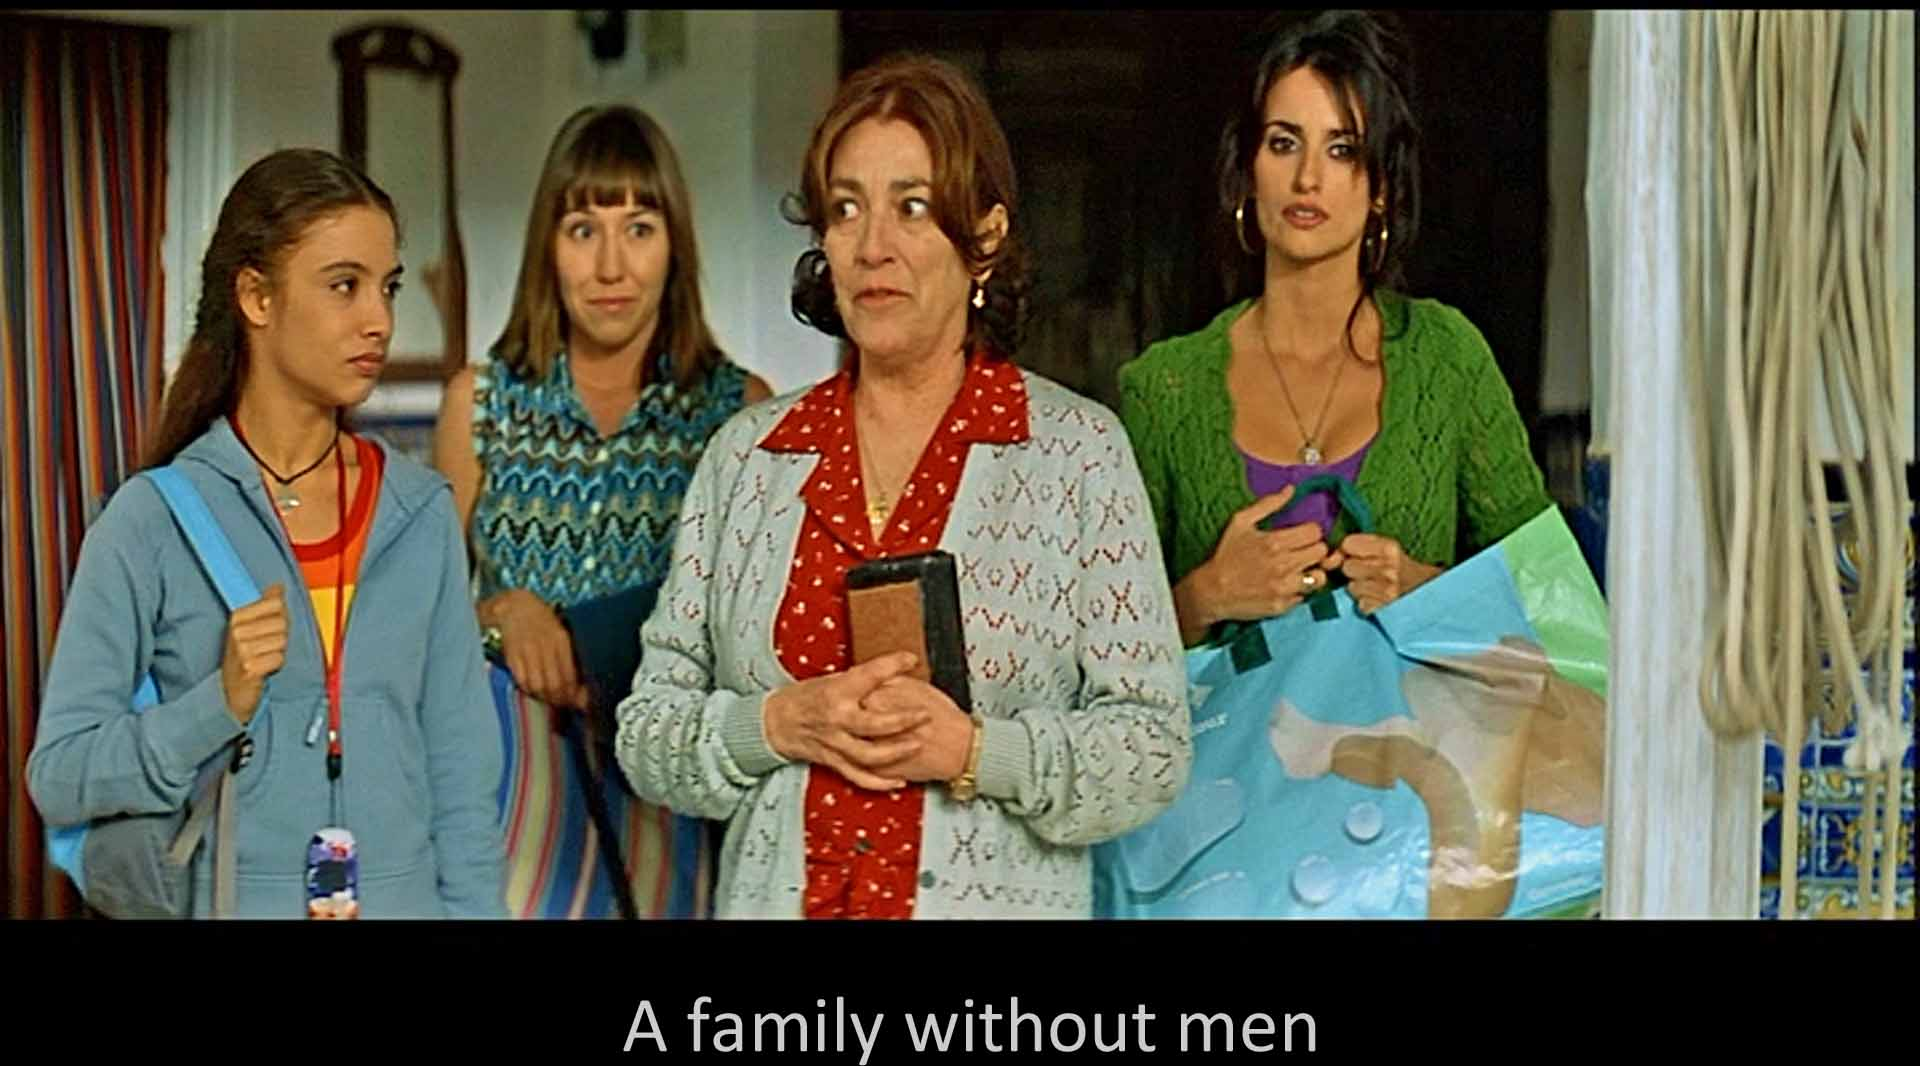 A family without men